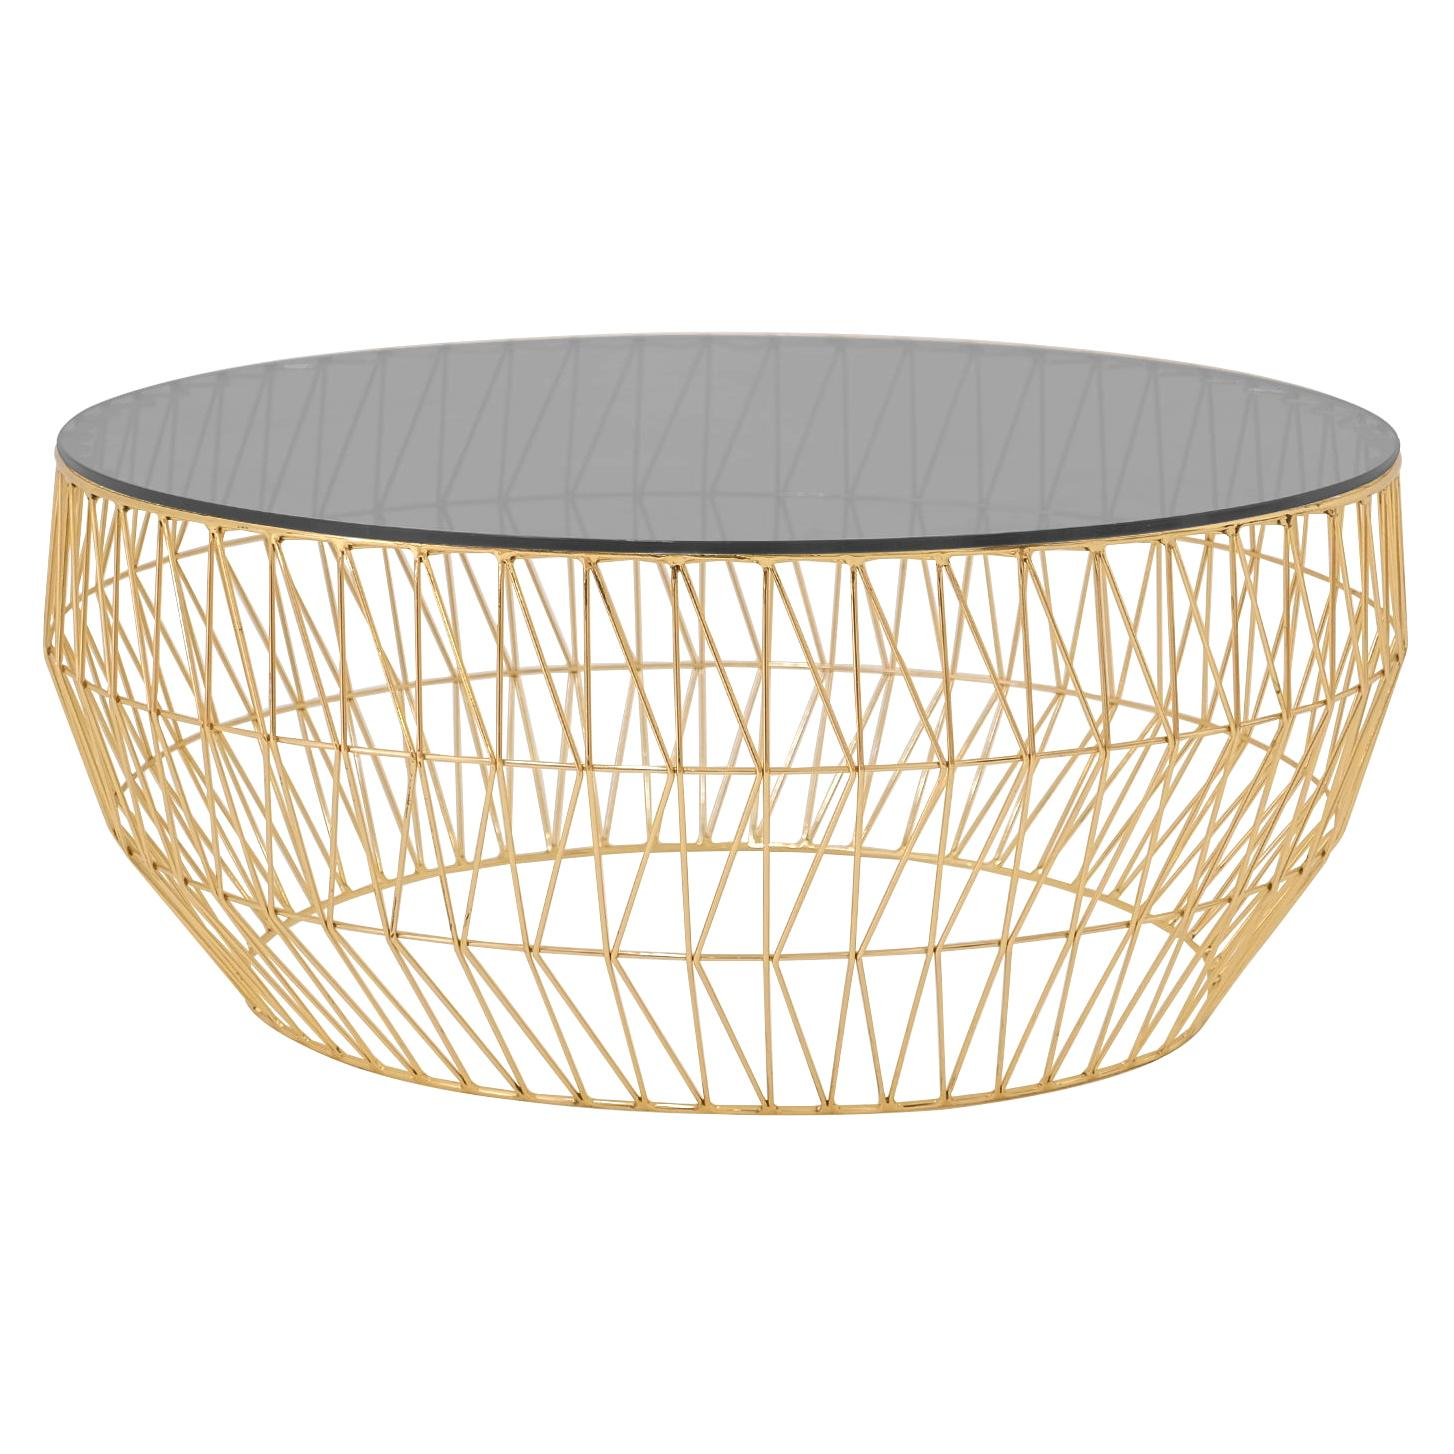 Minimalist Coffee Table, Wire Center Table in Gold with Smoked Glass